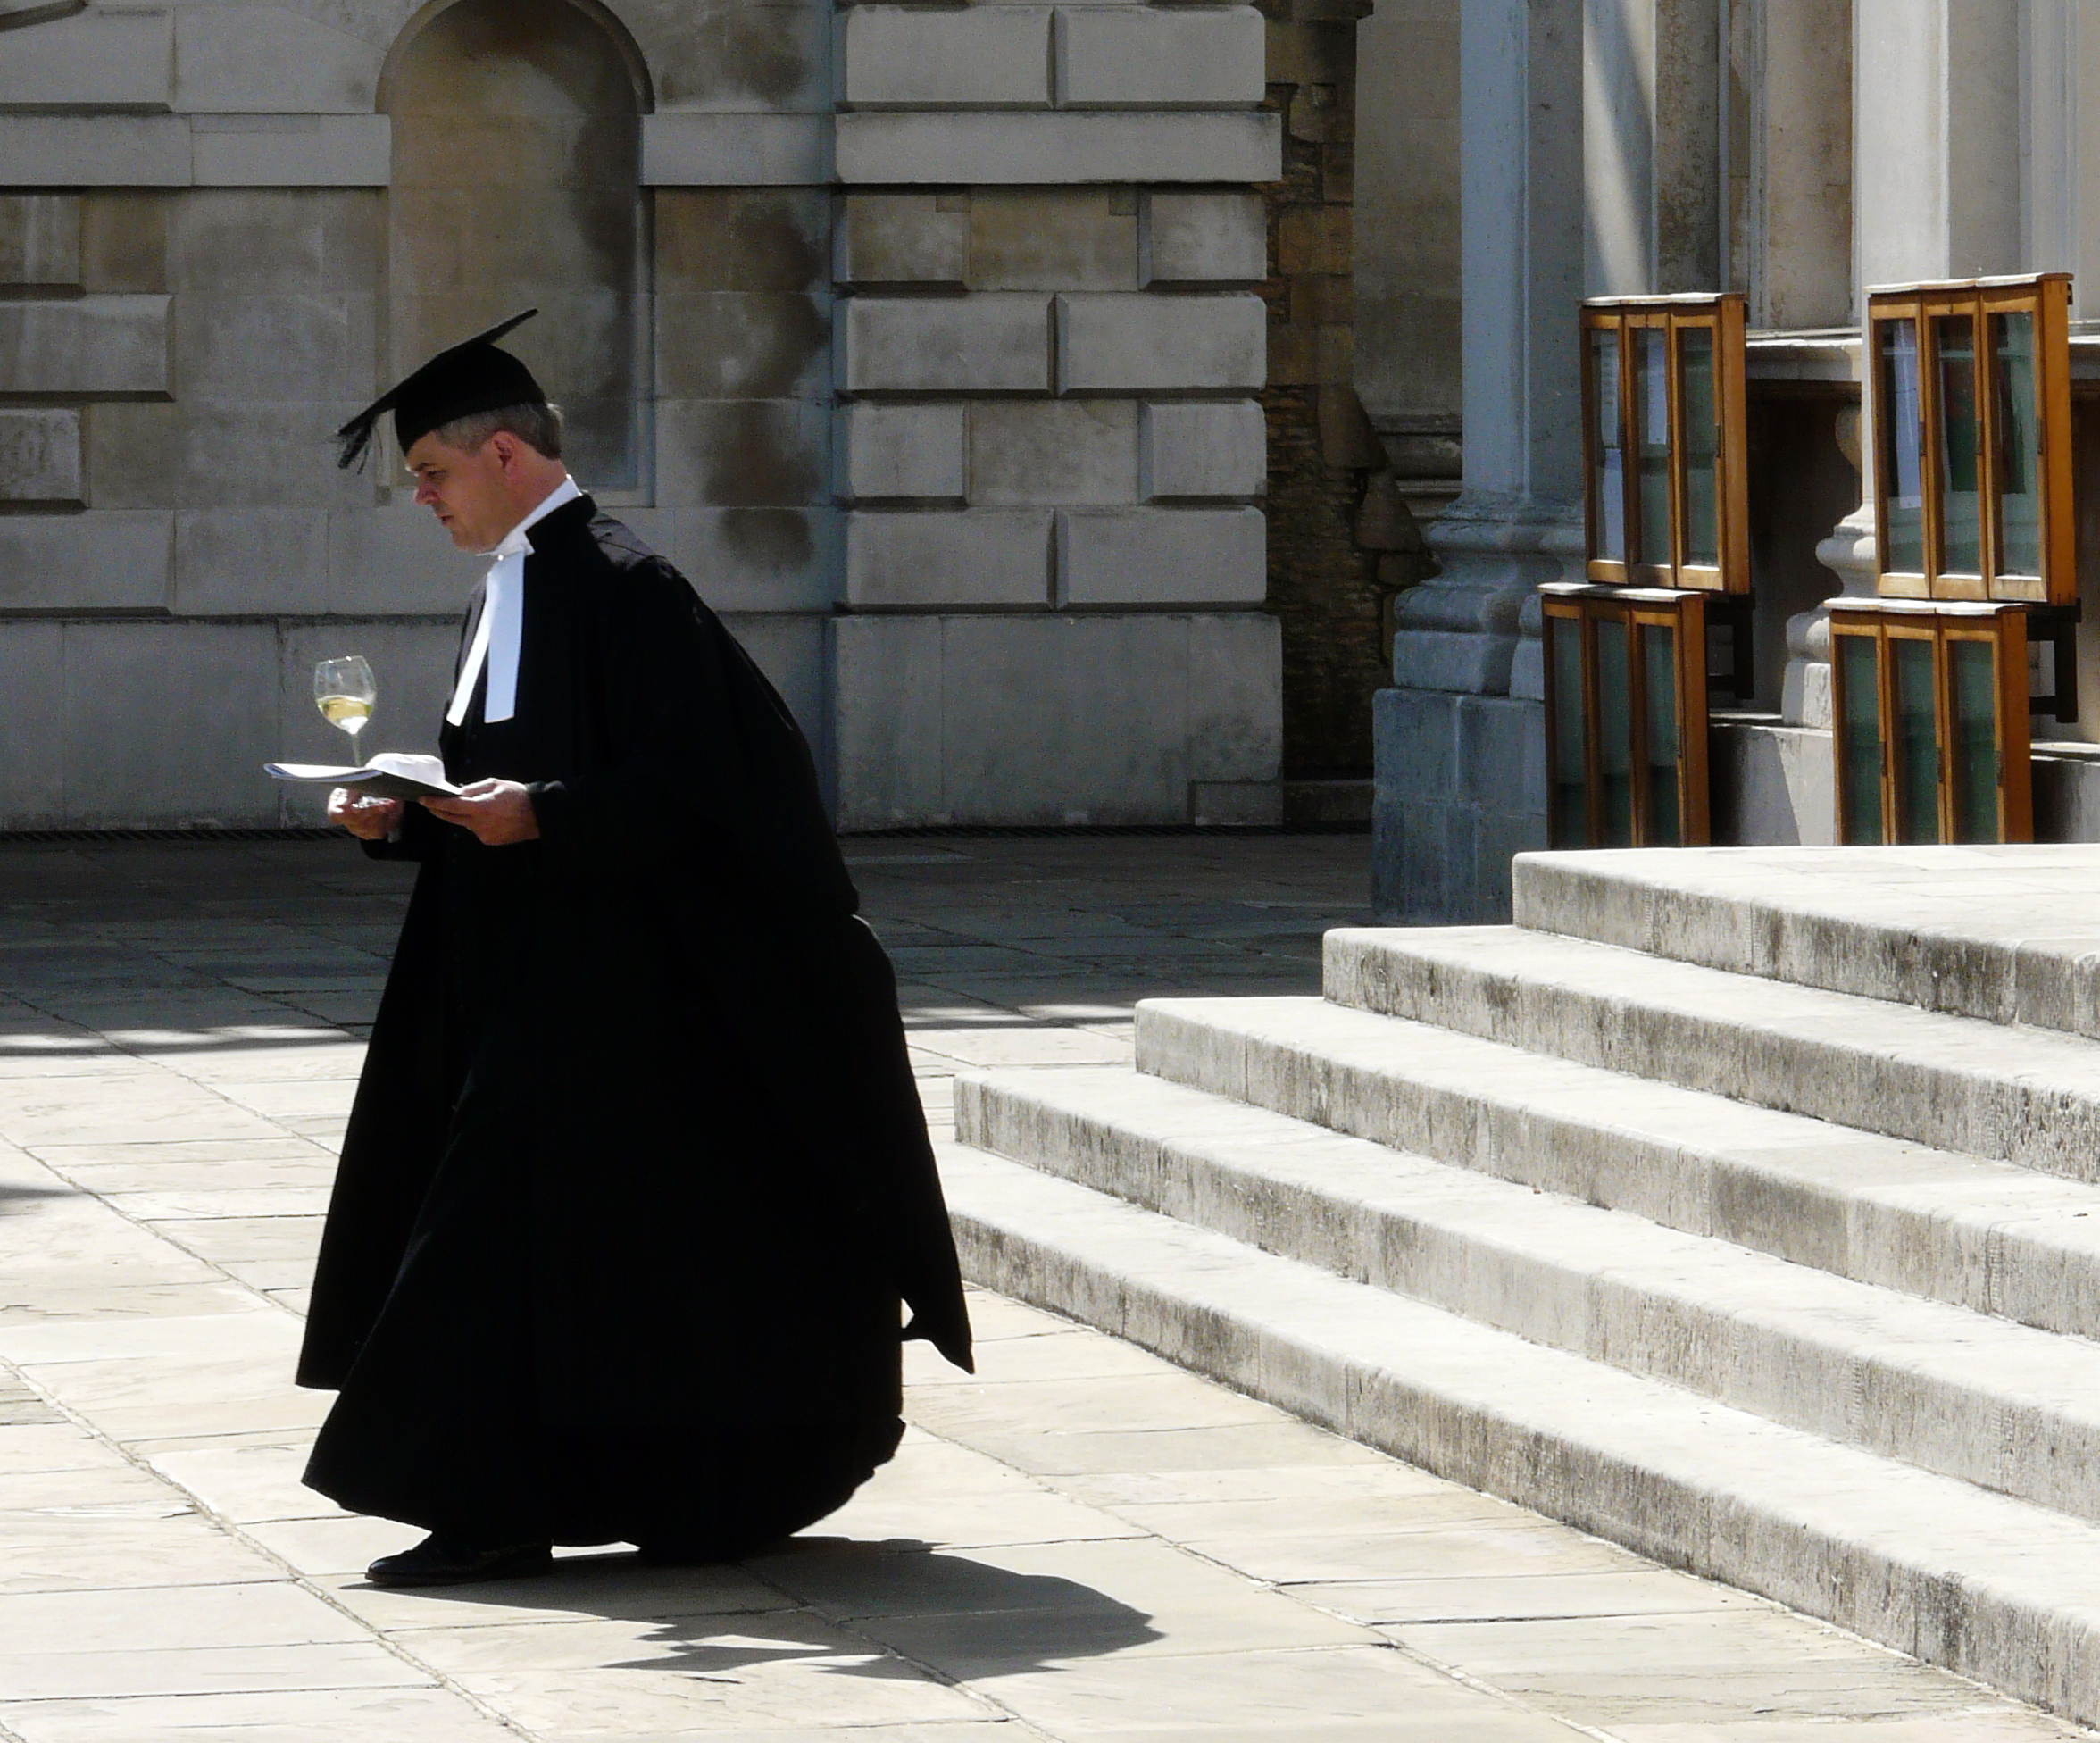 Cambridge students told not to wear gowns in town